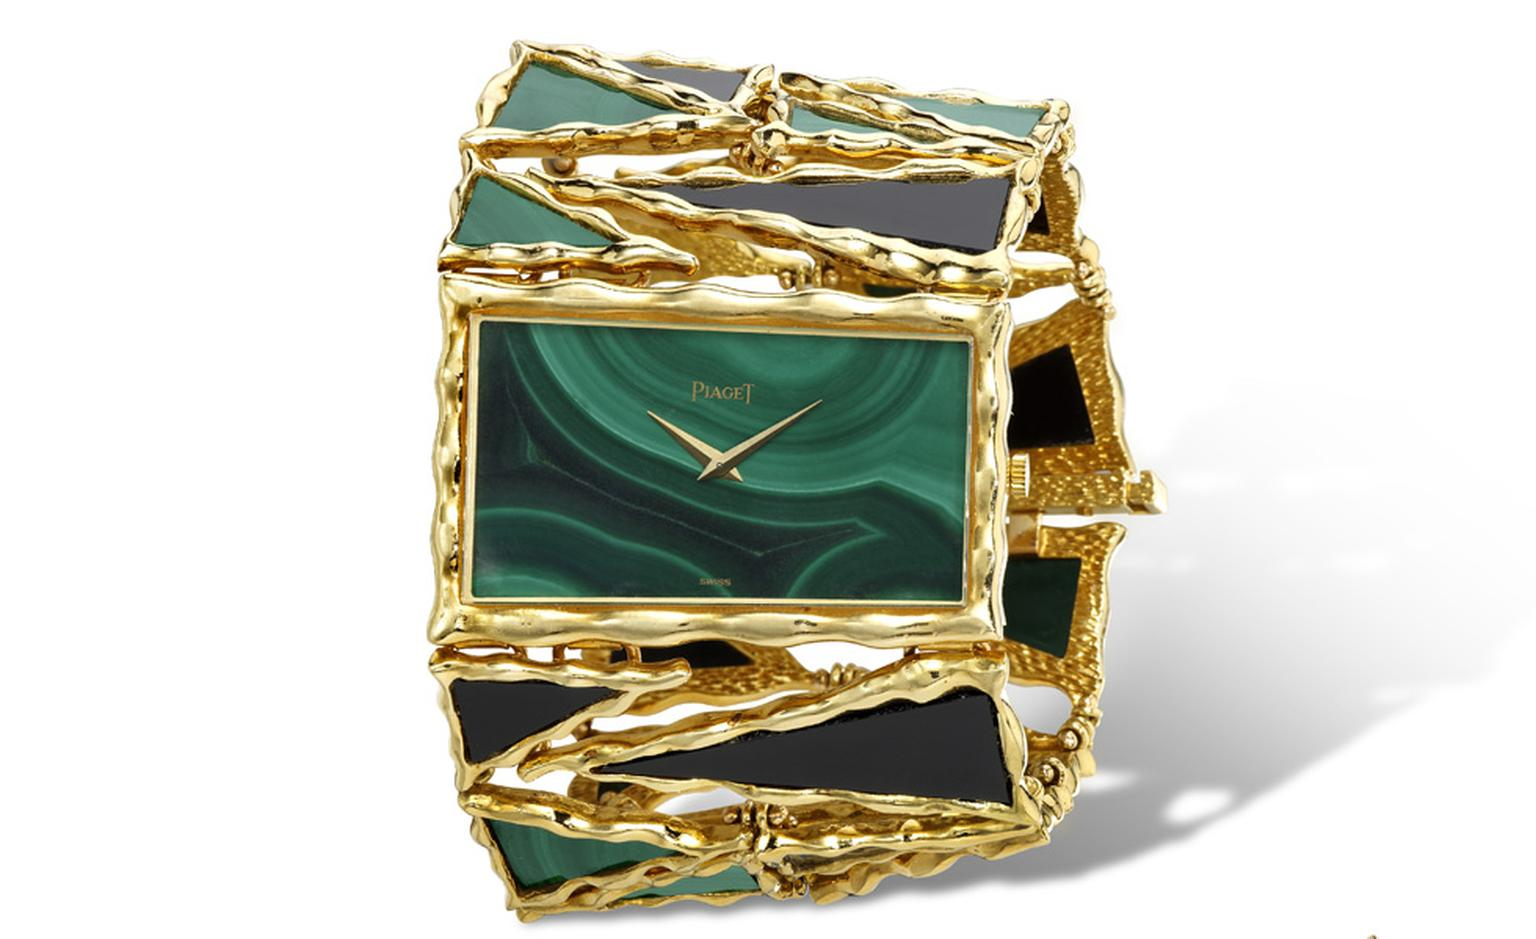 Piaget 1970 Cuff in yellow gold cuff watch with malachite dial and malachite and onyx bracelet. Piaget ultra-thin mechanical movement 9P. Piaget Private Collection.